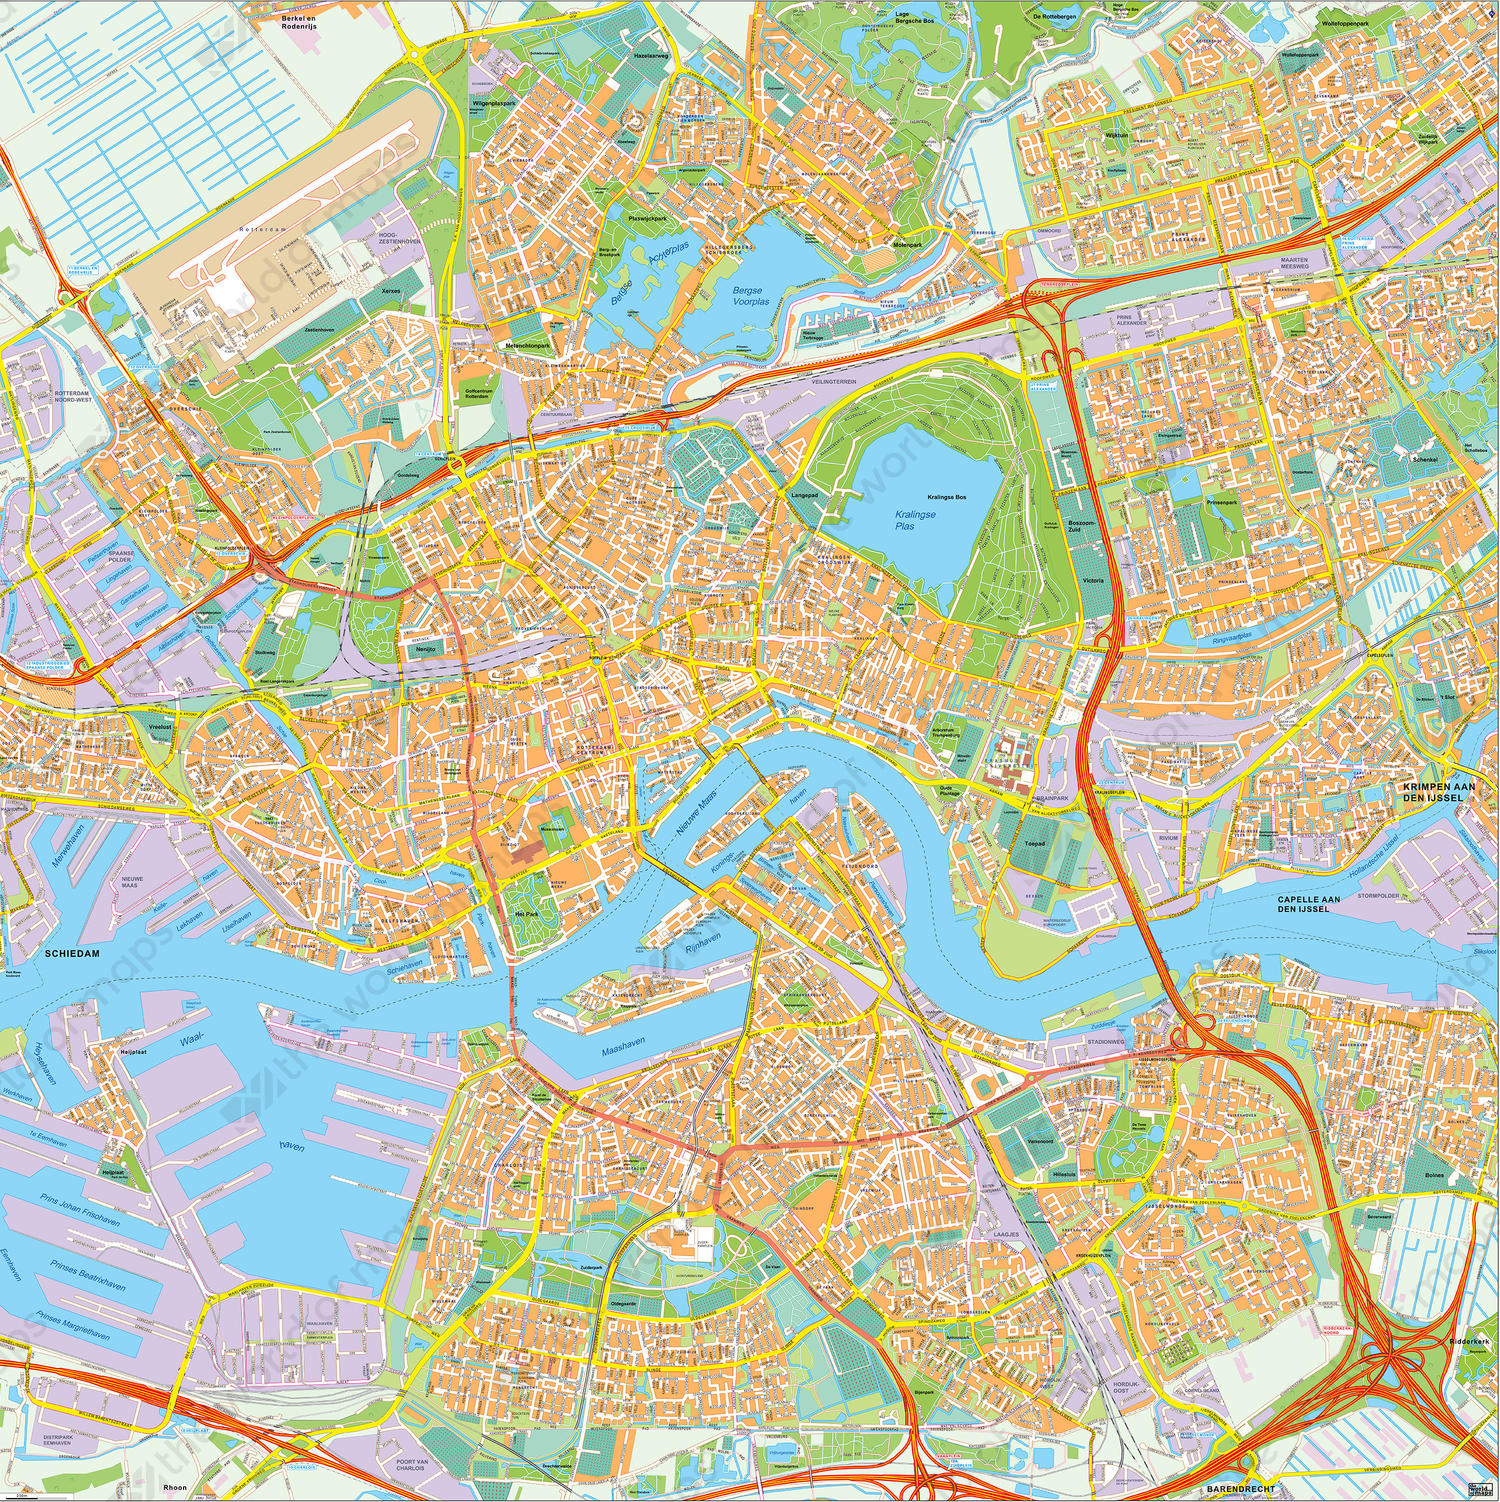 Digital City Map Rotterdam 404 | The World of Maps.com